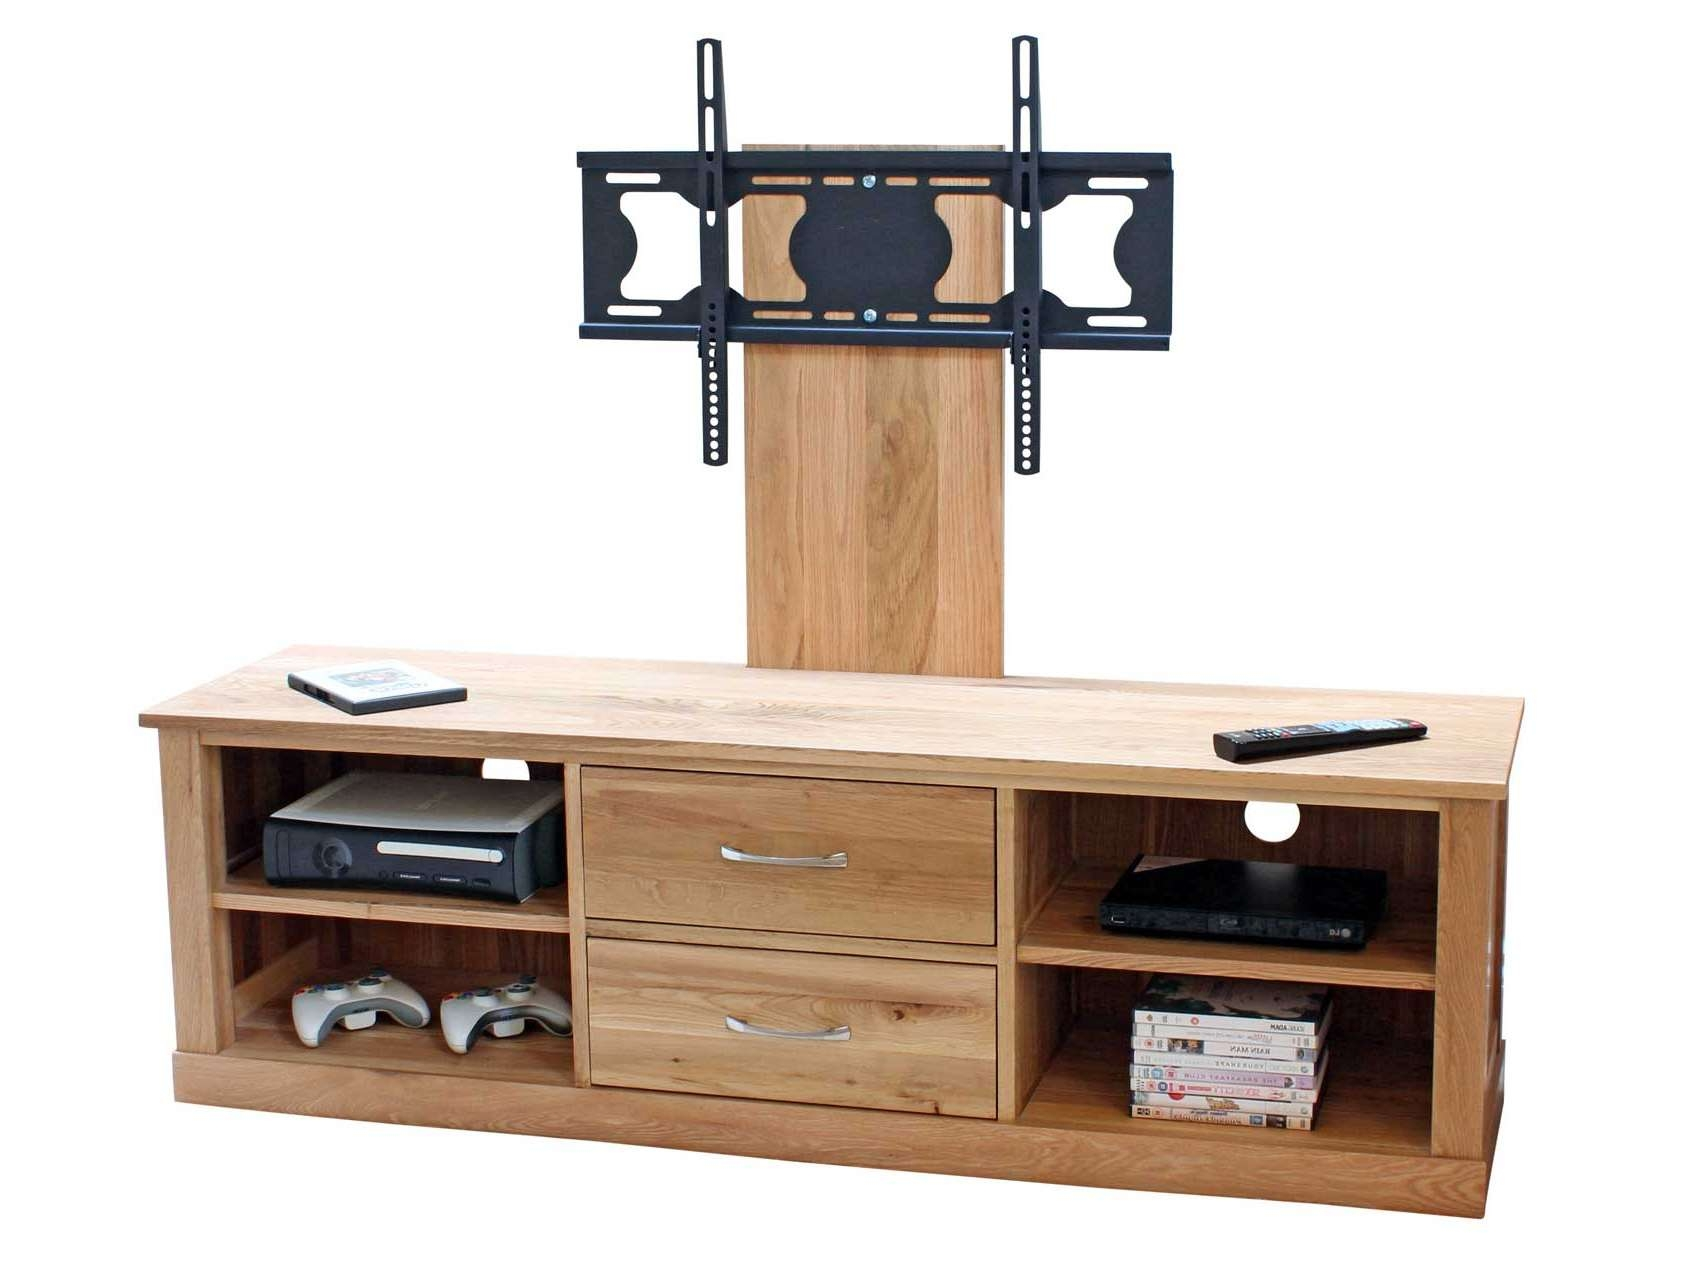 Classic Oak Television Unit With Mount Hampshire Furniture 3 For Wooden Tv Stands And Cabinets (View 3 of 15)